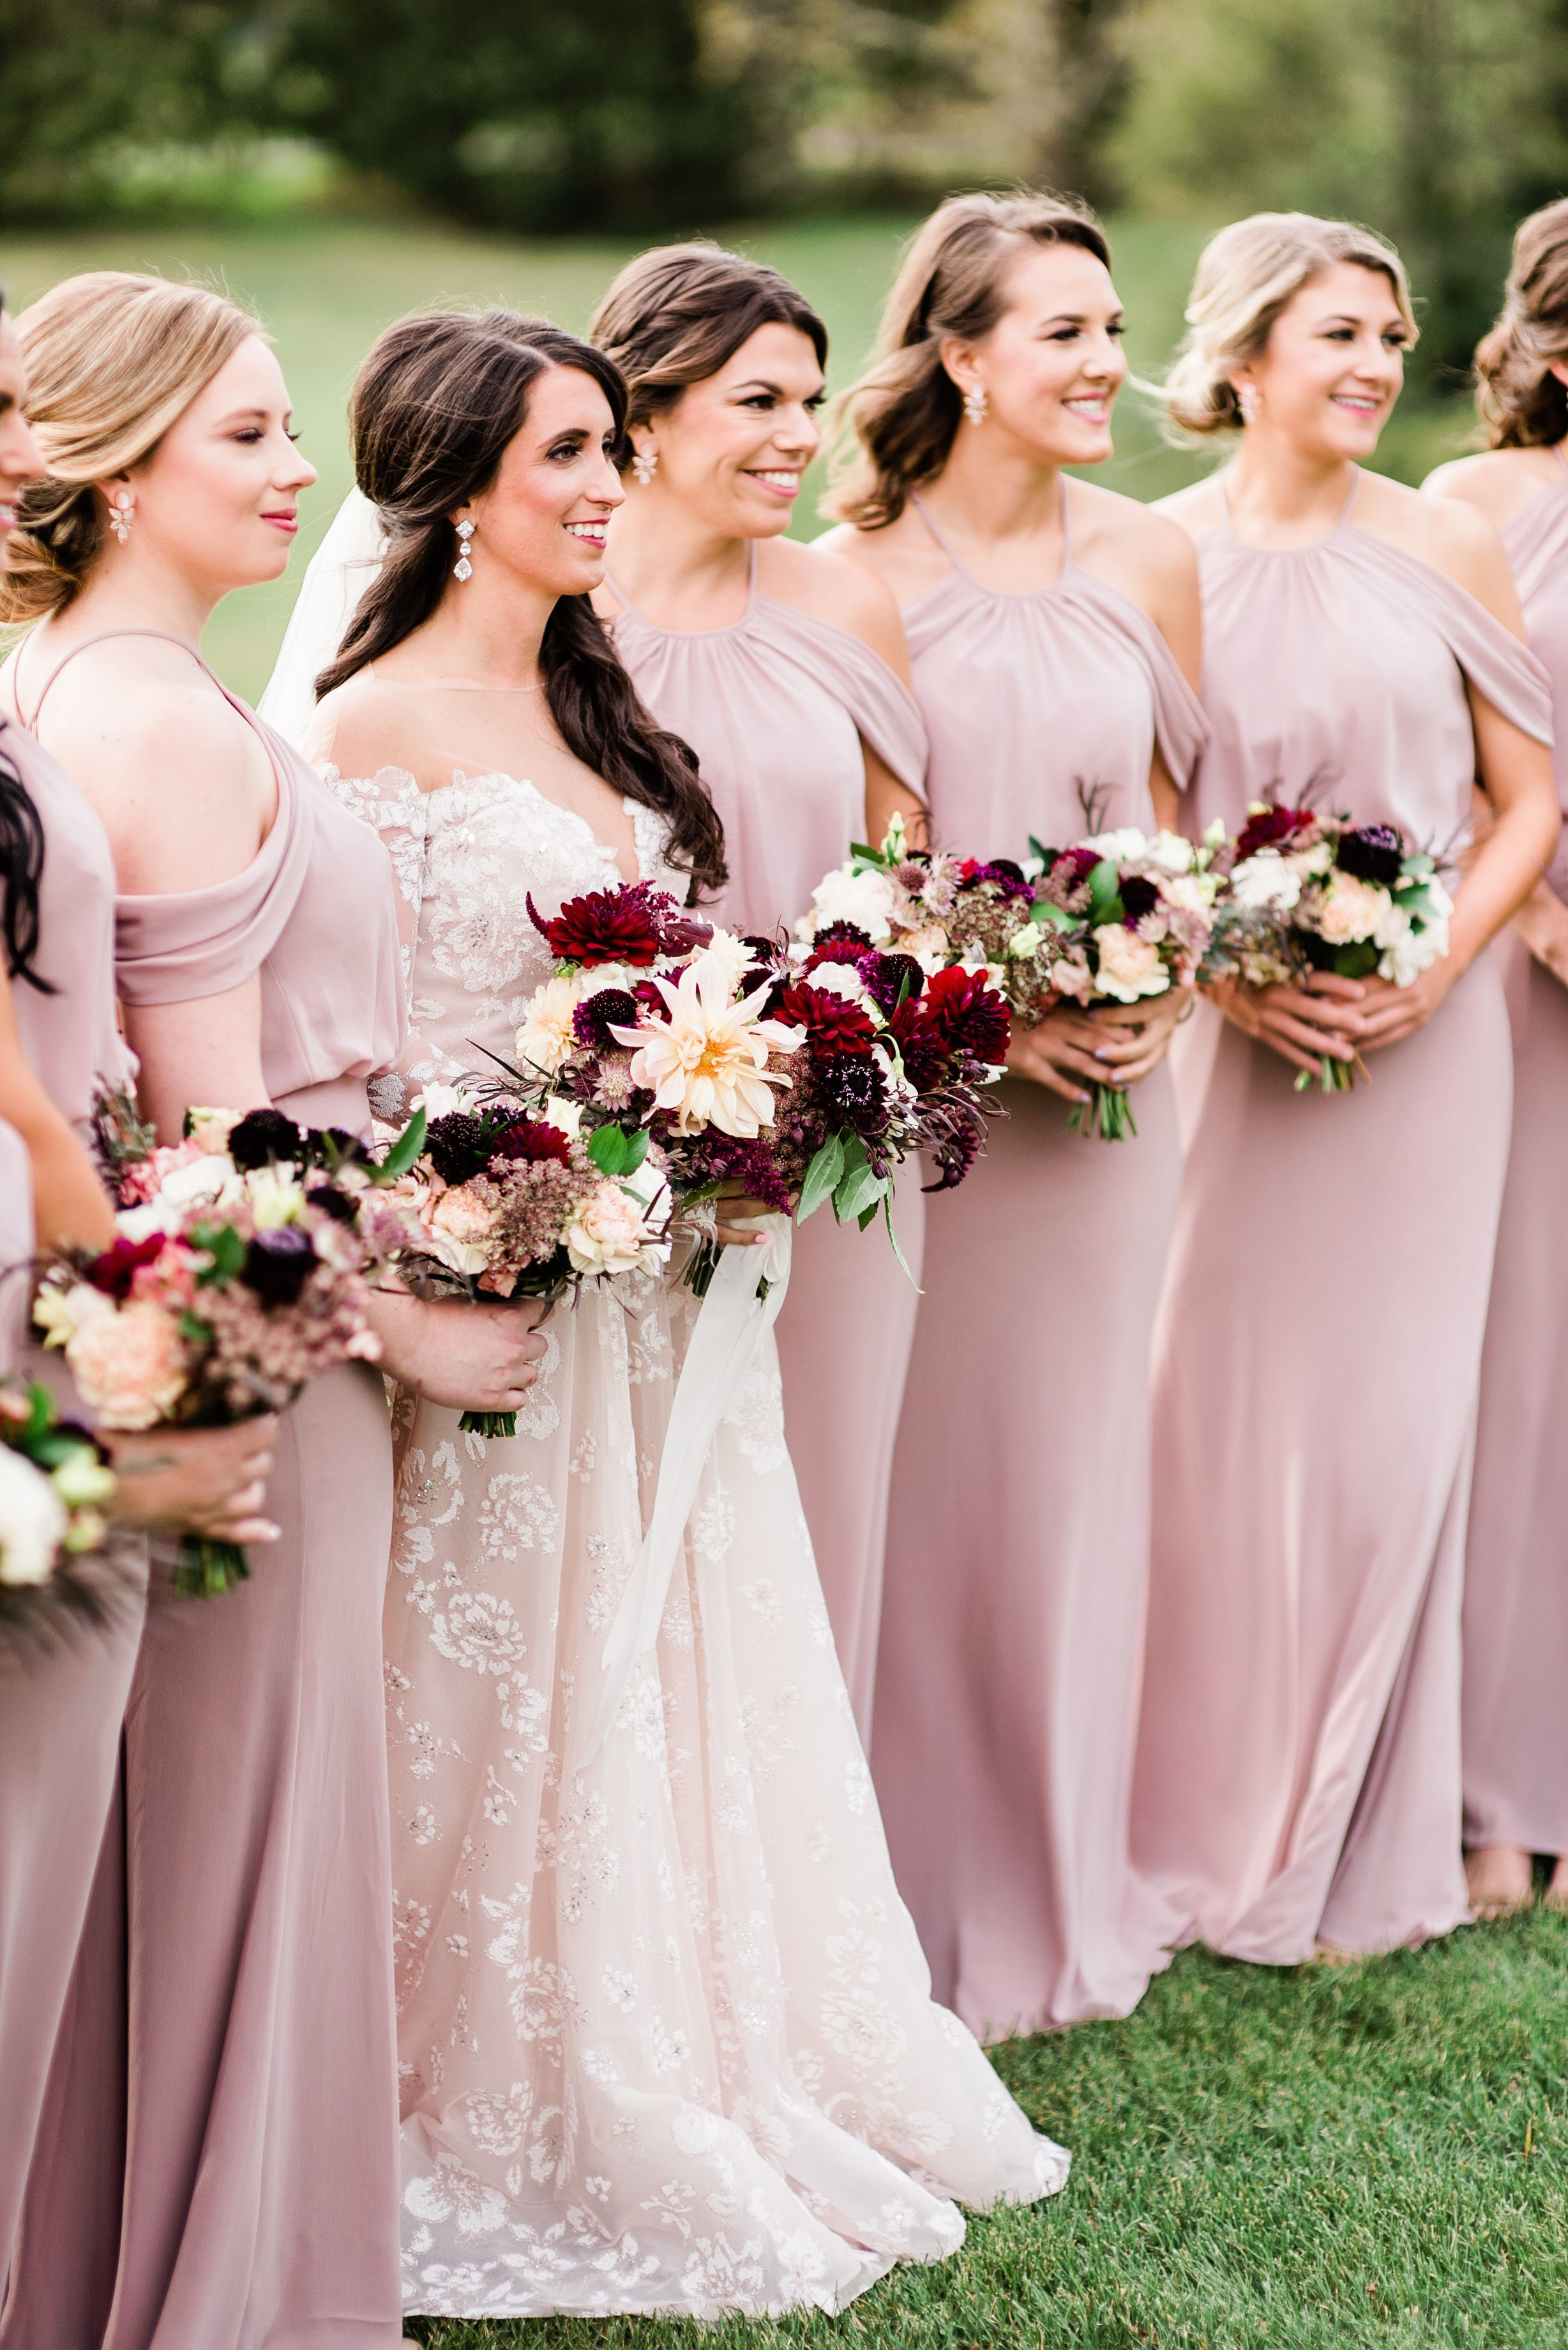 Burgundy And Blush Bridesmaids Burgundy And Blush Bouquets